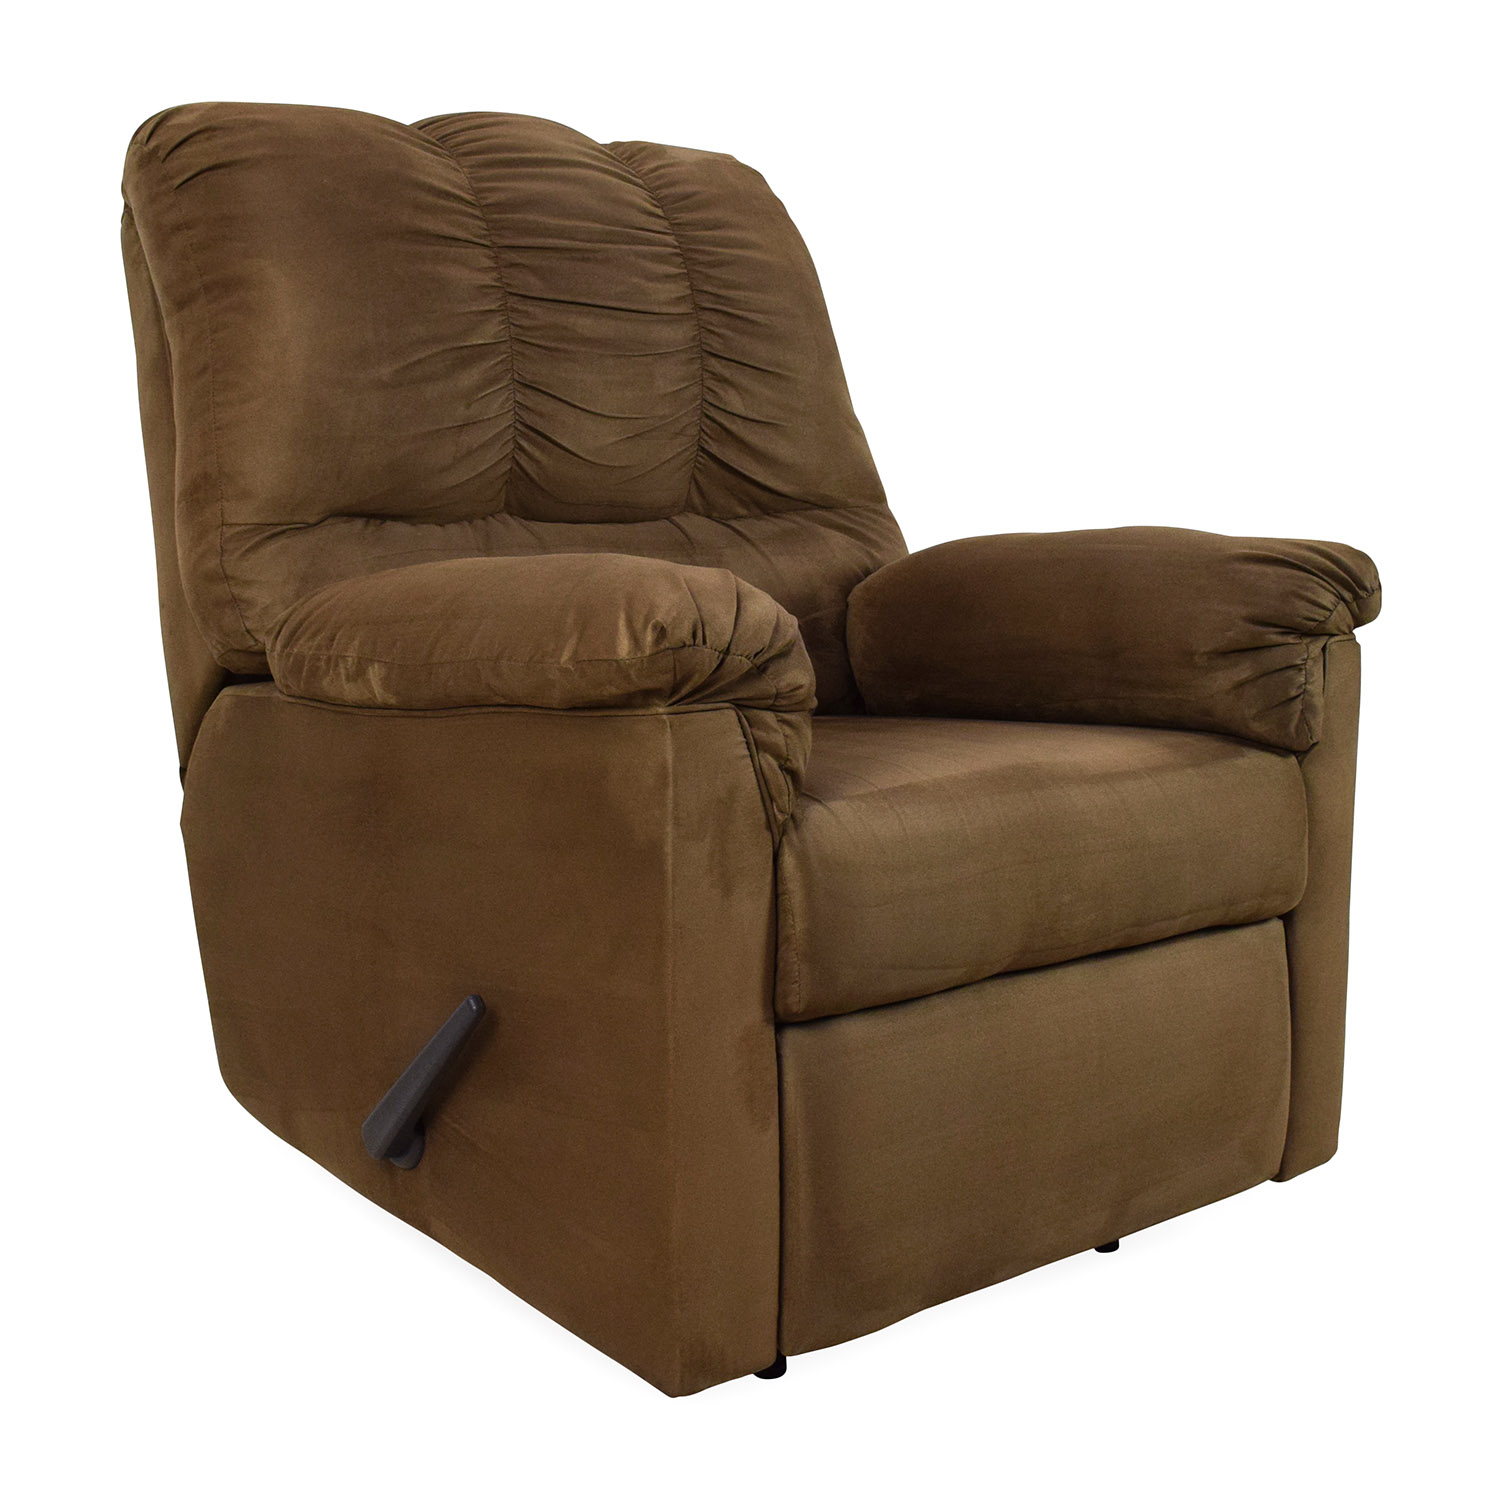 73 Off Ashley Furniture Ashley Furniture Darcy Rocker Recliner Chairs